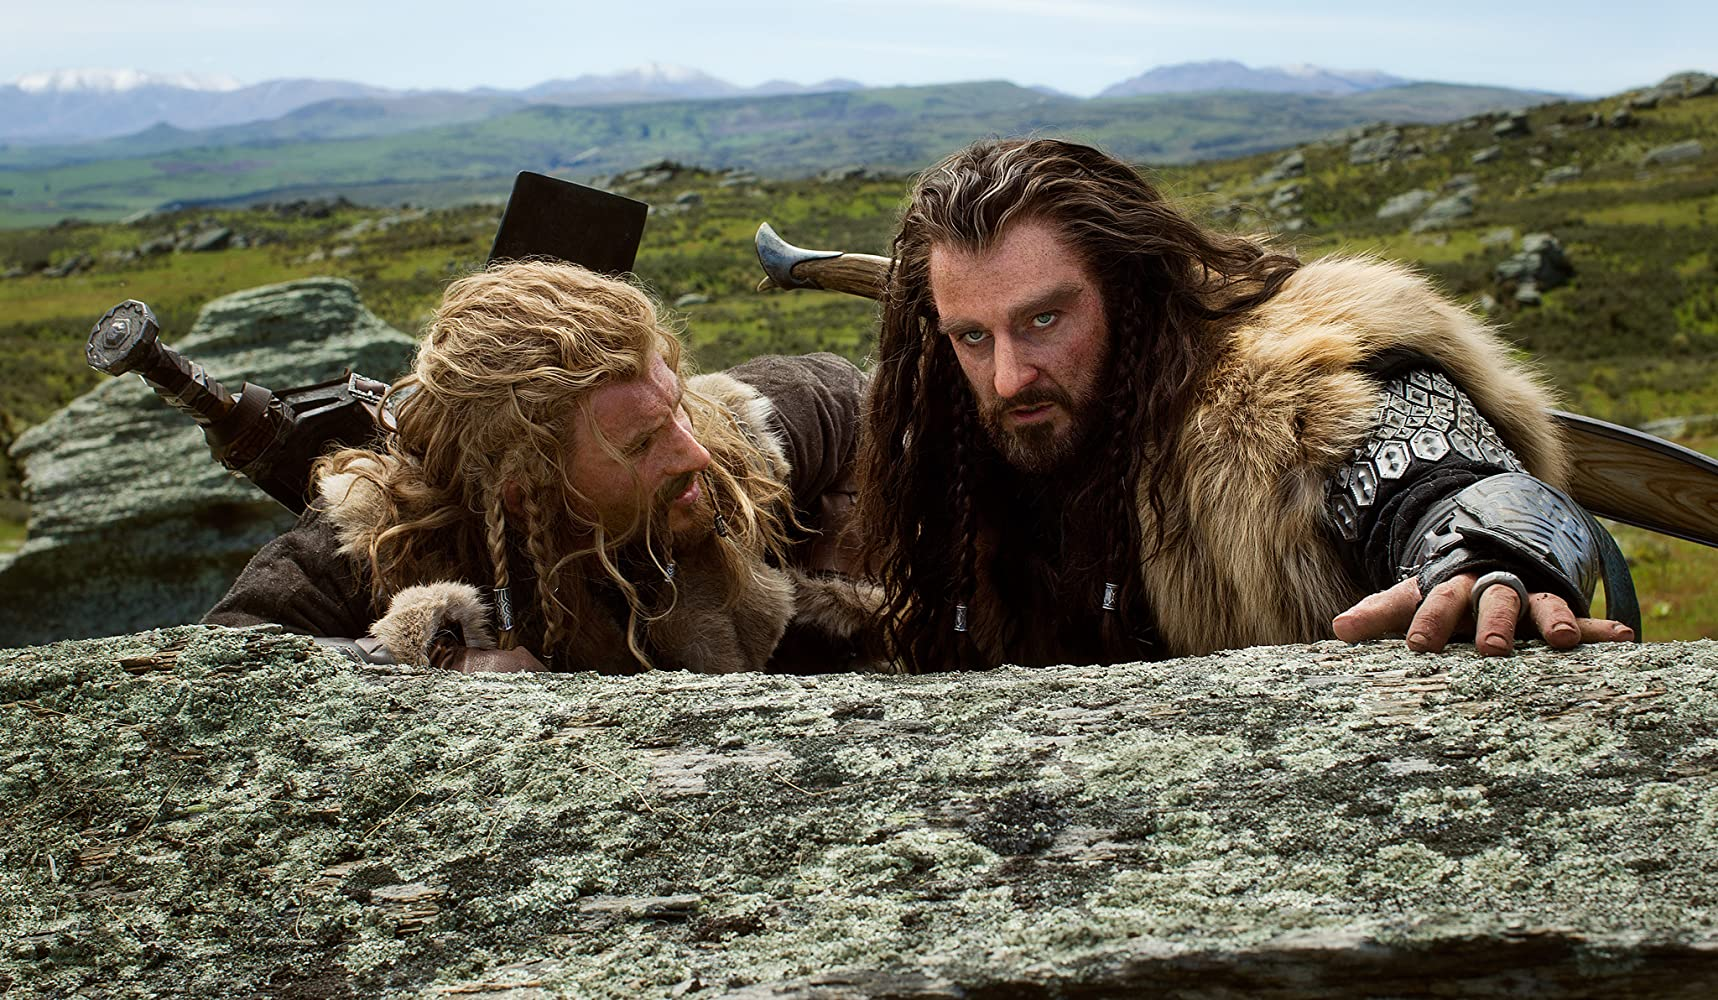 Richard Armitage and Dean O'Gorman in The Hobbit: An Unexpected Journey (2012)